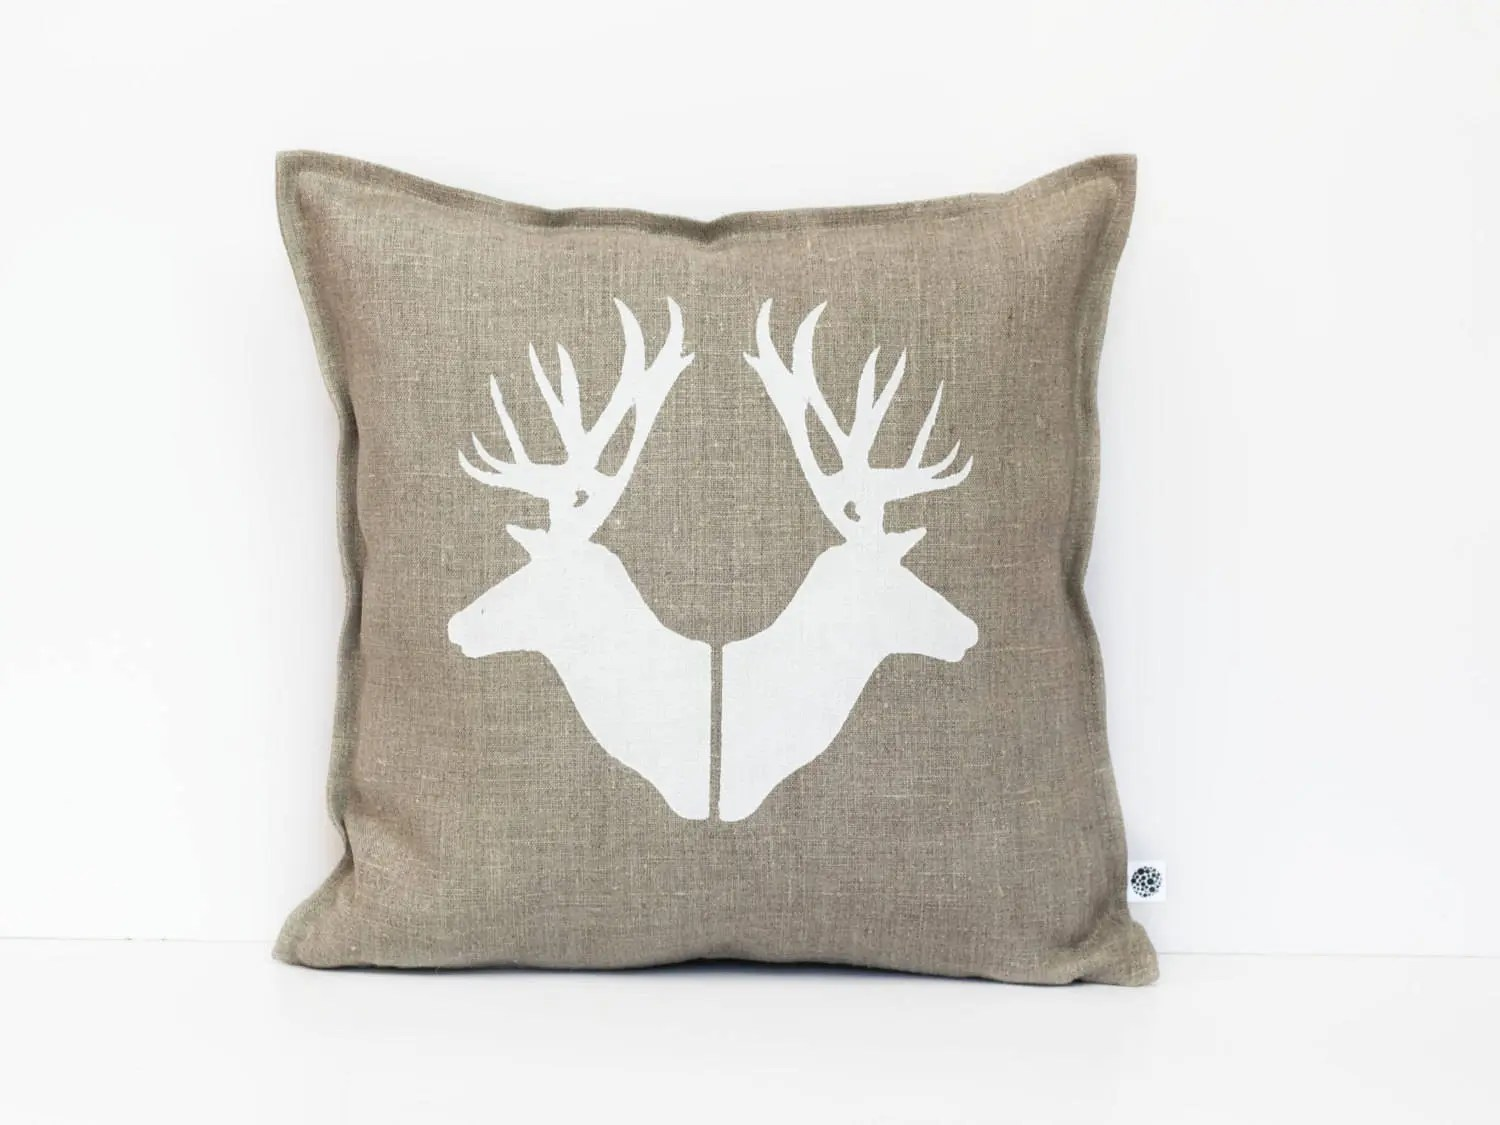 deer print sofa covers best leather cleaner conditioner pillows heads throw pillow